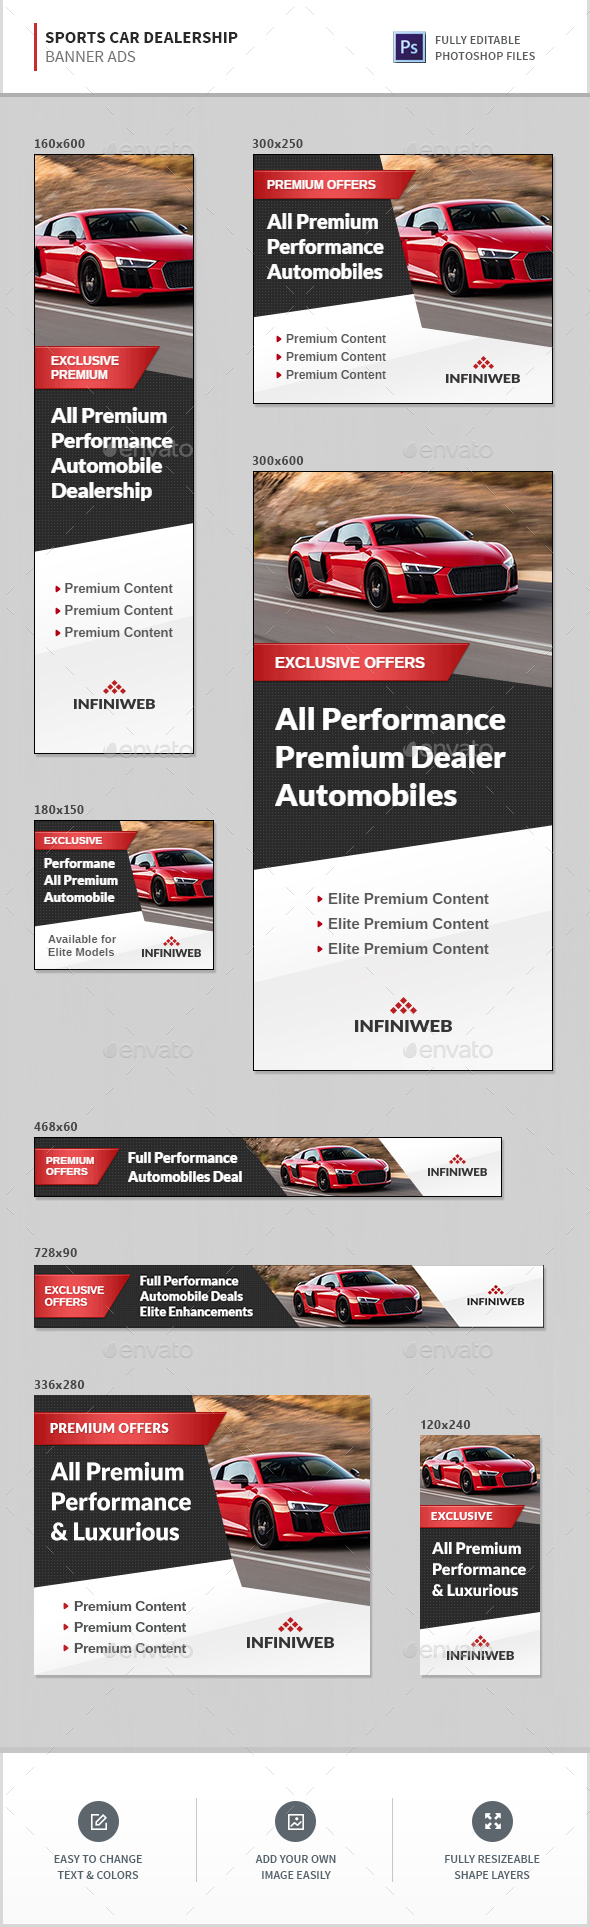 Automotive Car Dealership Graphics Designs Templates